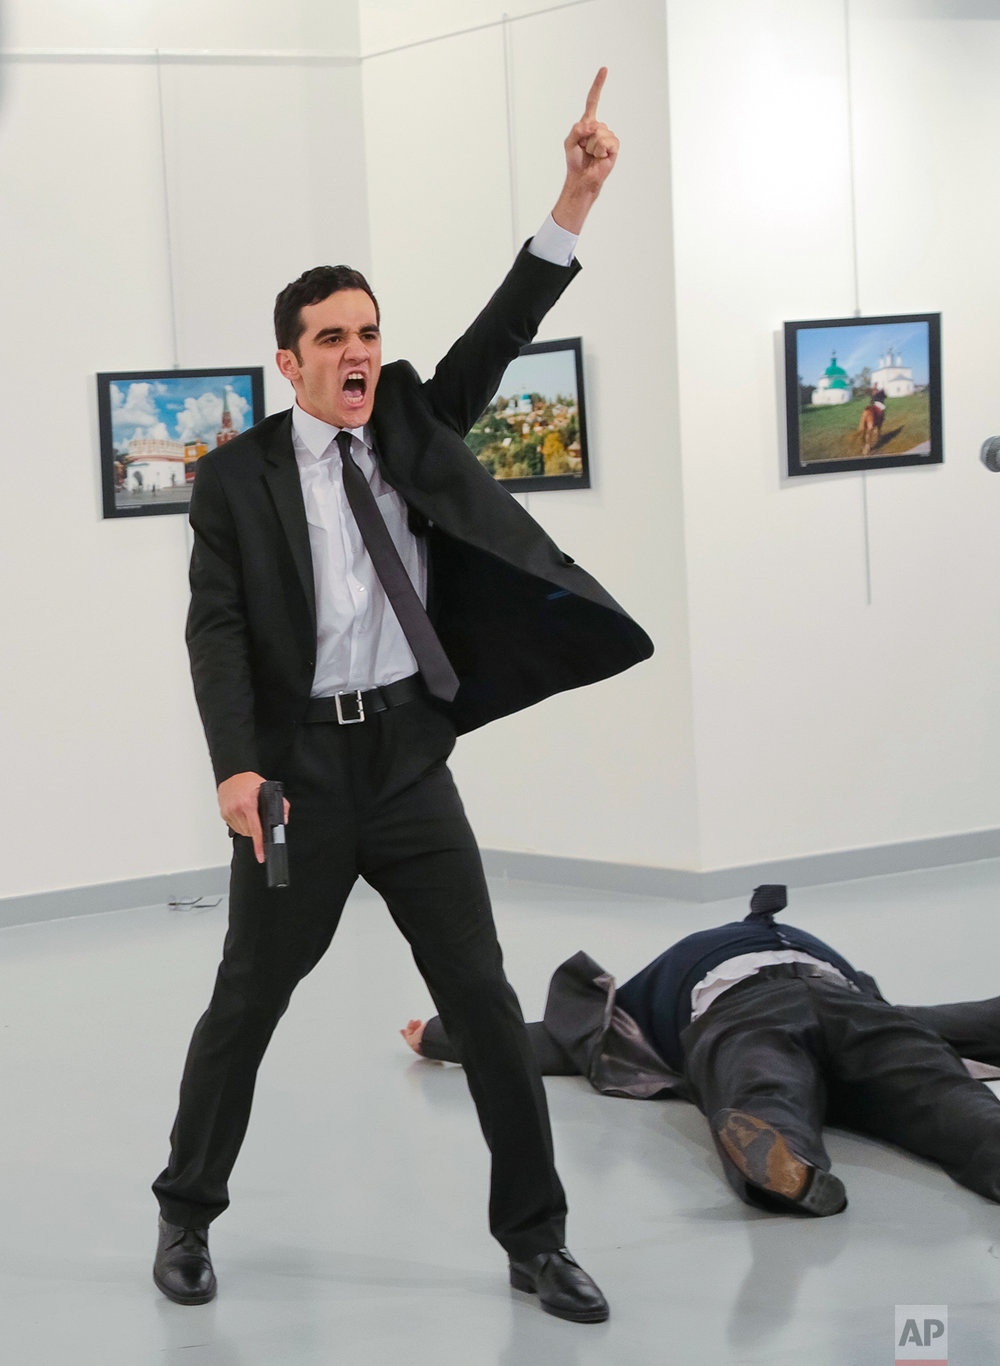 "A man identified as Mevlut Mert Altintas holds up a gun after shooting Andrei Karlov, the Russian Ambassador to Turkey, at a photo gallery in Ankara, Turkey, Monday, Dec. 19, 2016. Shouting ""Don't forget Aleppo! Don't forget Syria!"" Altintas fatally shot Karlov in front of stunned onlookers at a photo exhibit. Police killed the assailant after a shootout. (AP Photo/Burhan Ozbilici)"